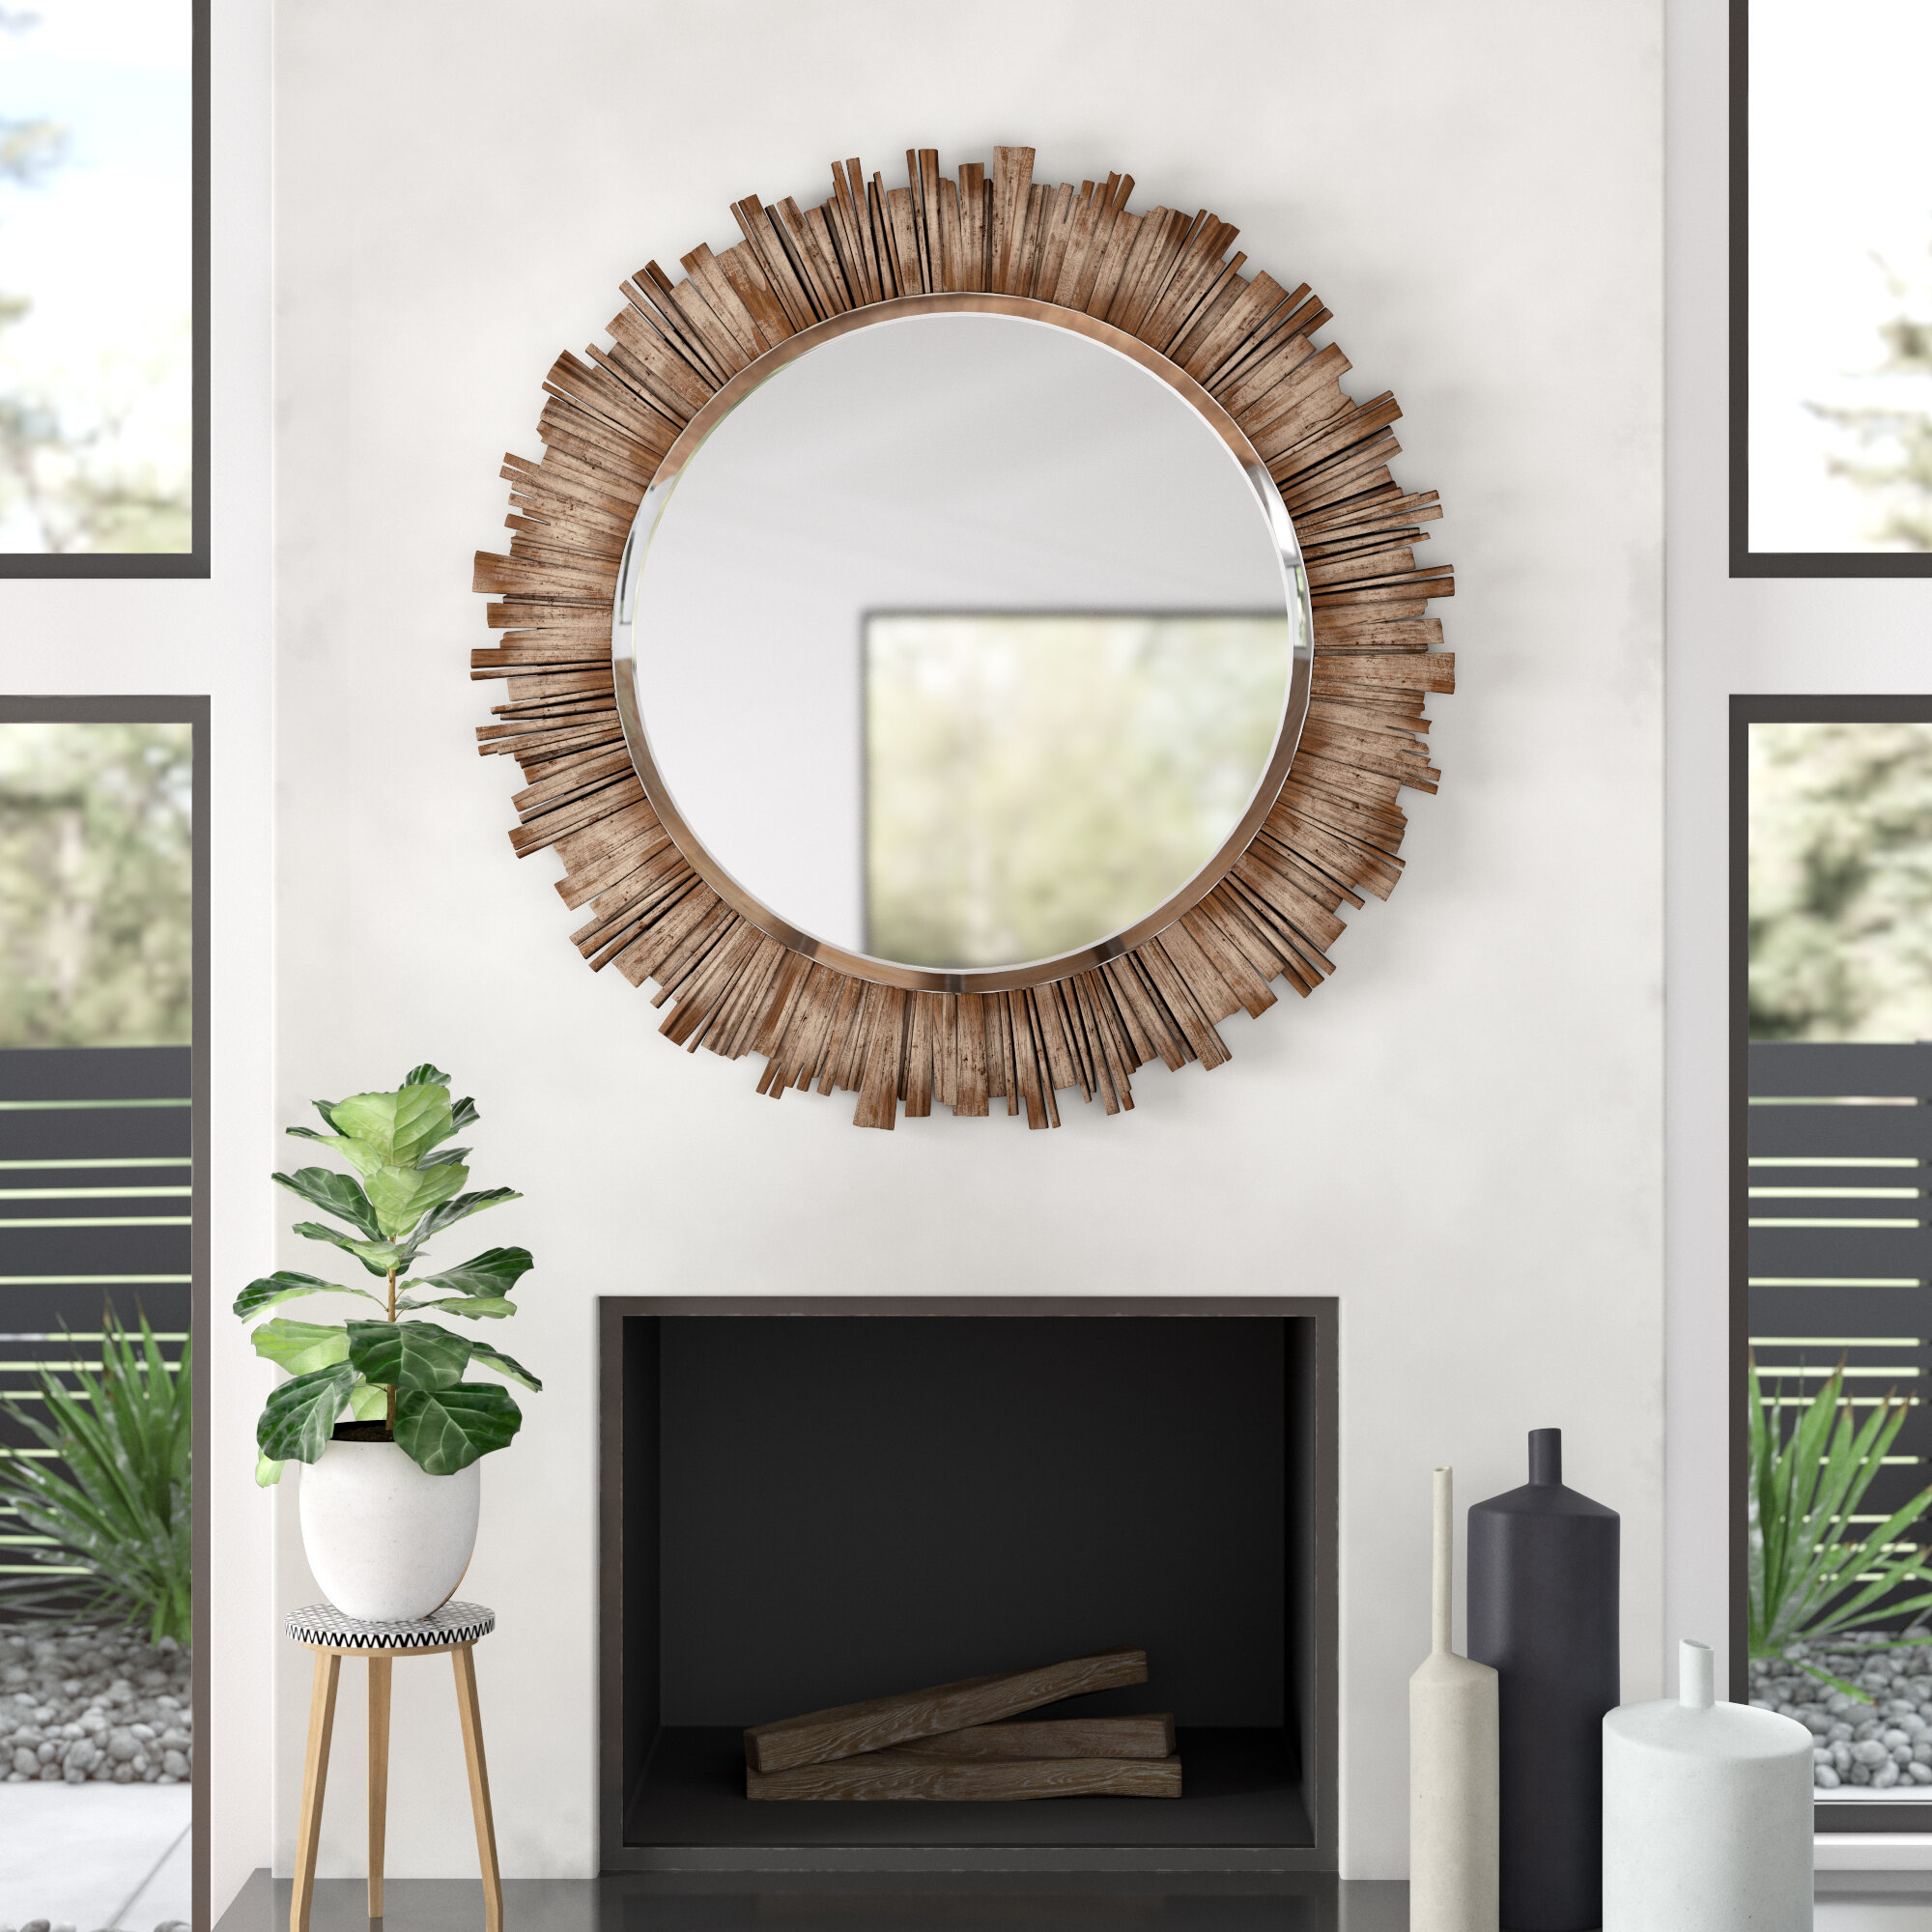 Raleigh Wall Mirror & Reviews | Allmodern With Point Reyes Molten Round Wall Mirrors (Image 12 of 20)